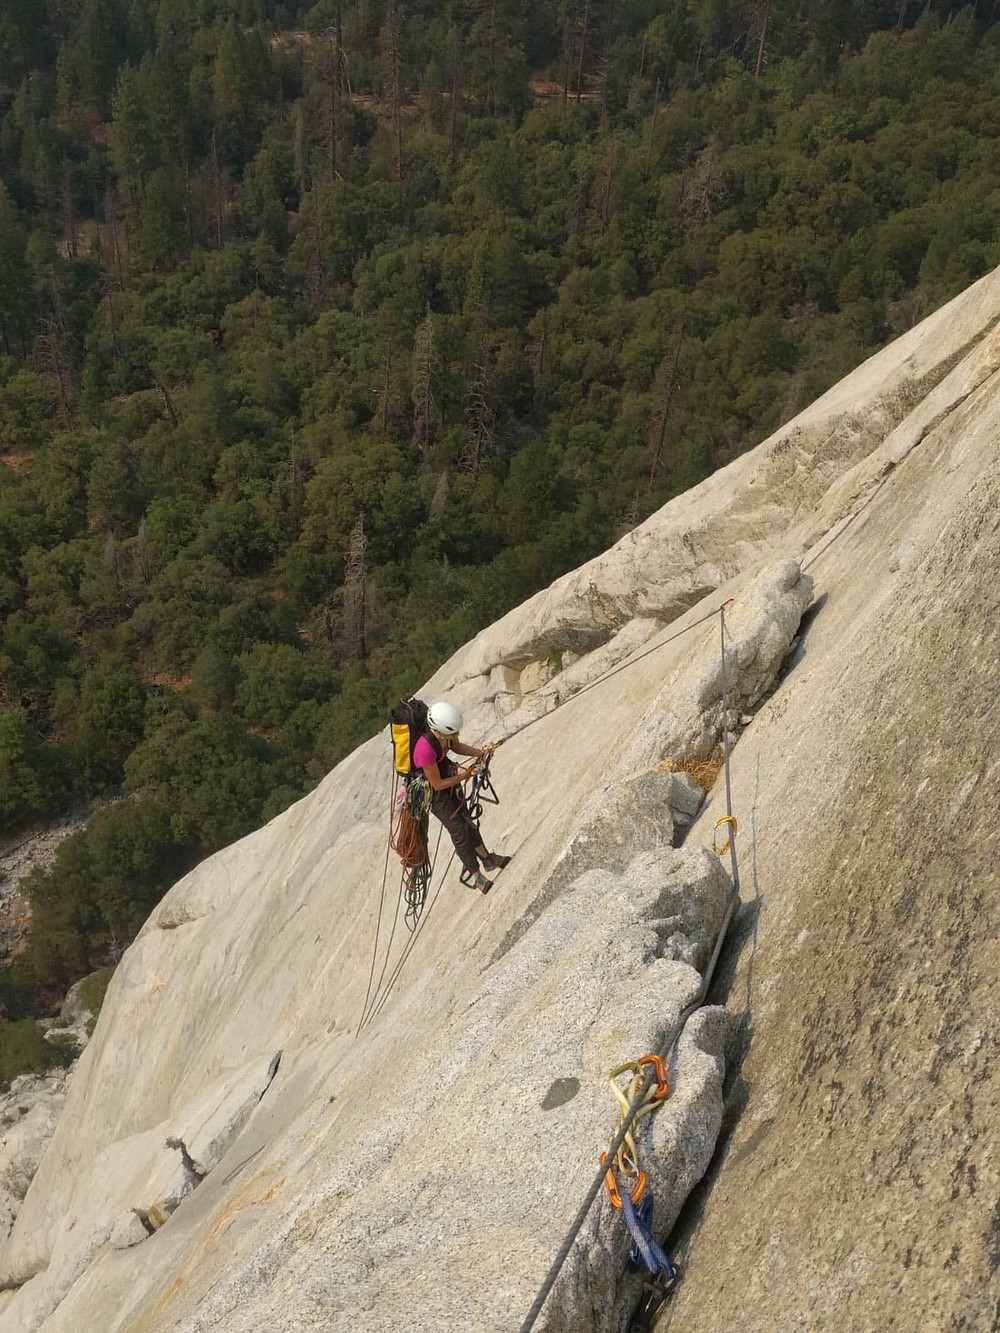 Using some rope skills and doing rope maneuvers on El Capitan while climbing The Nose.